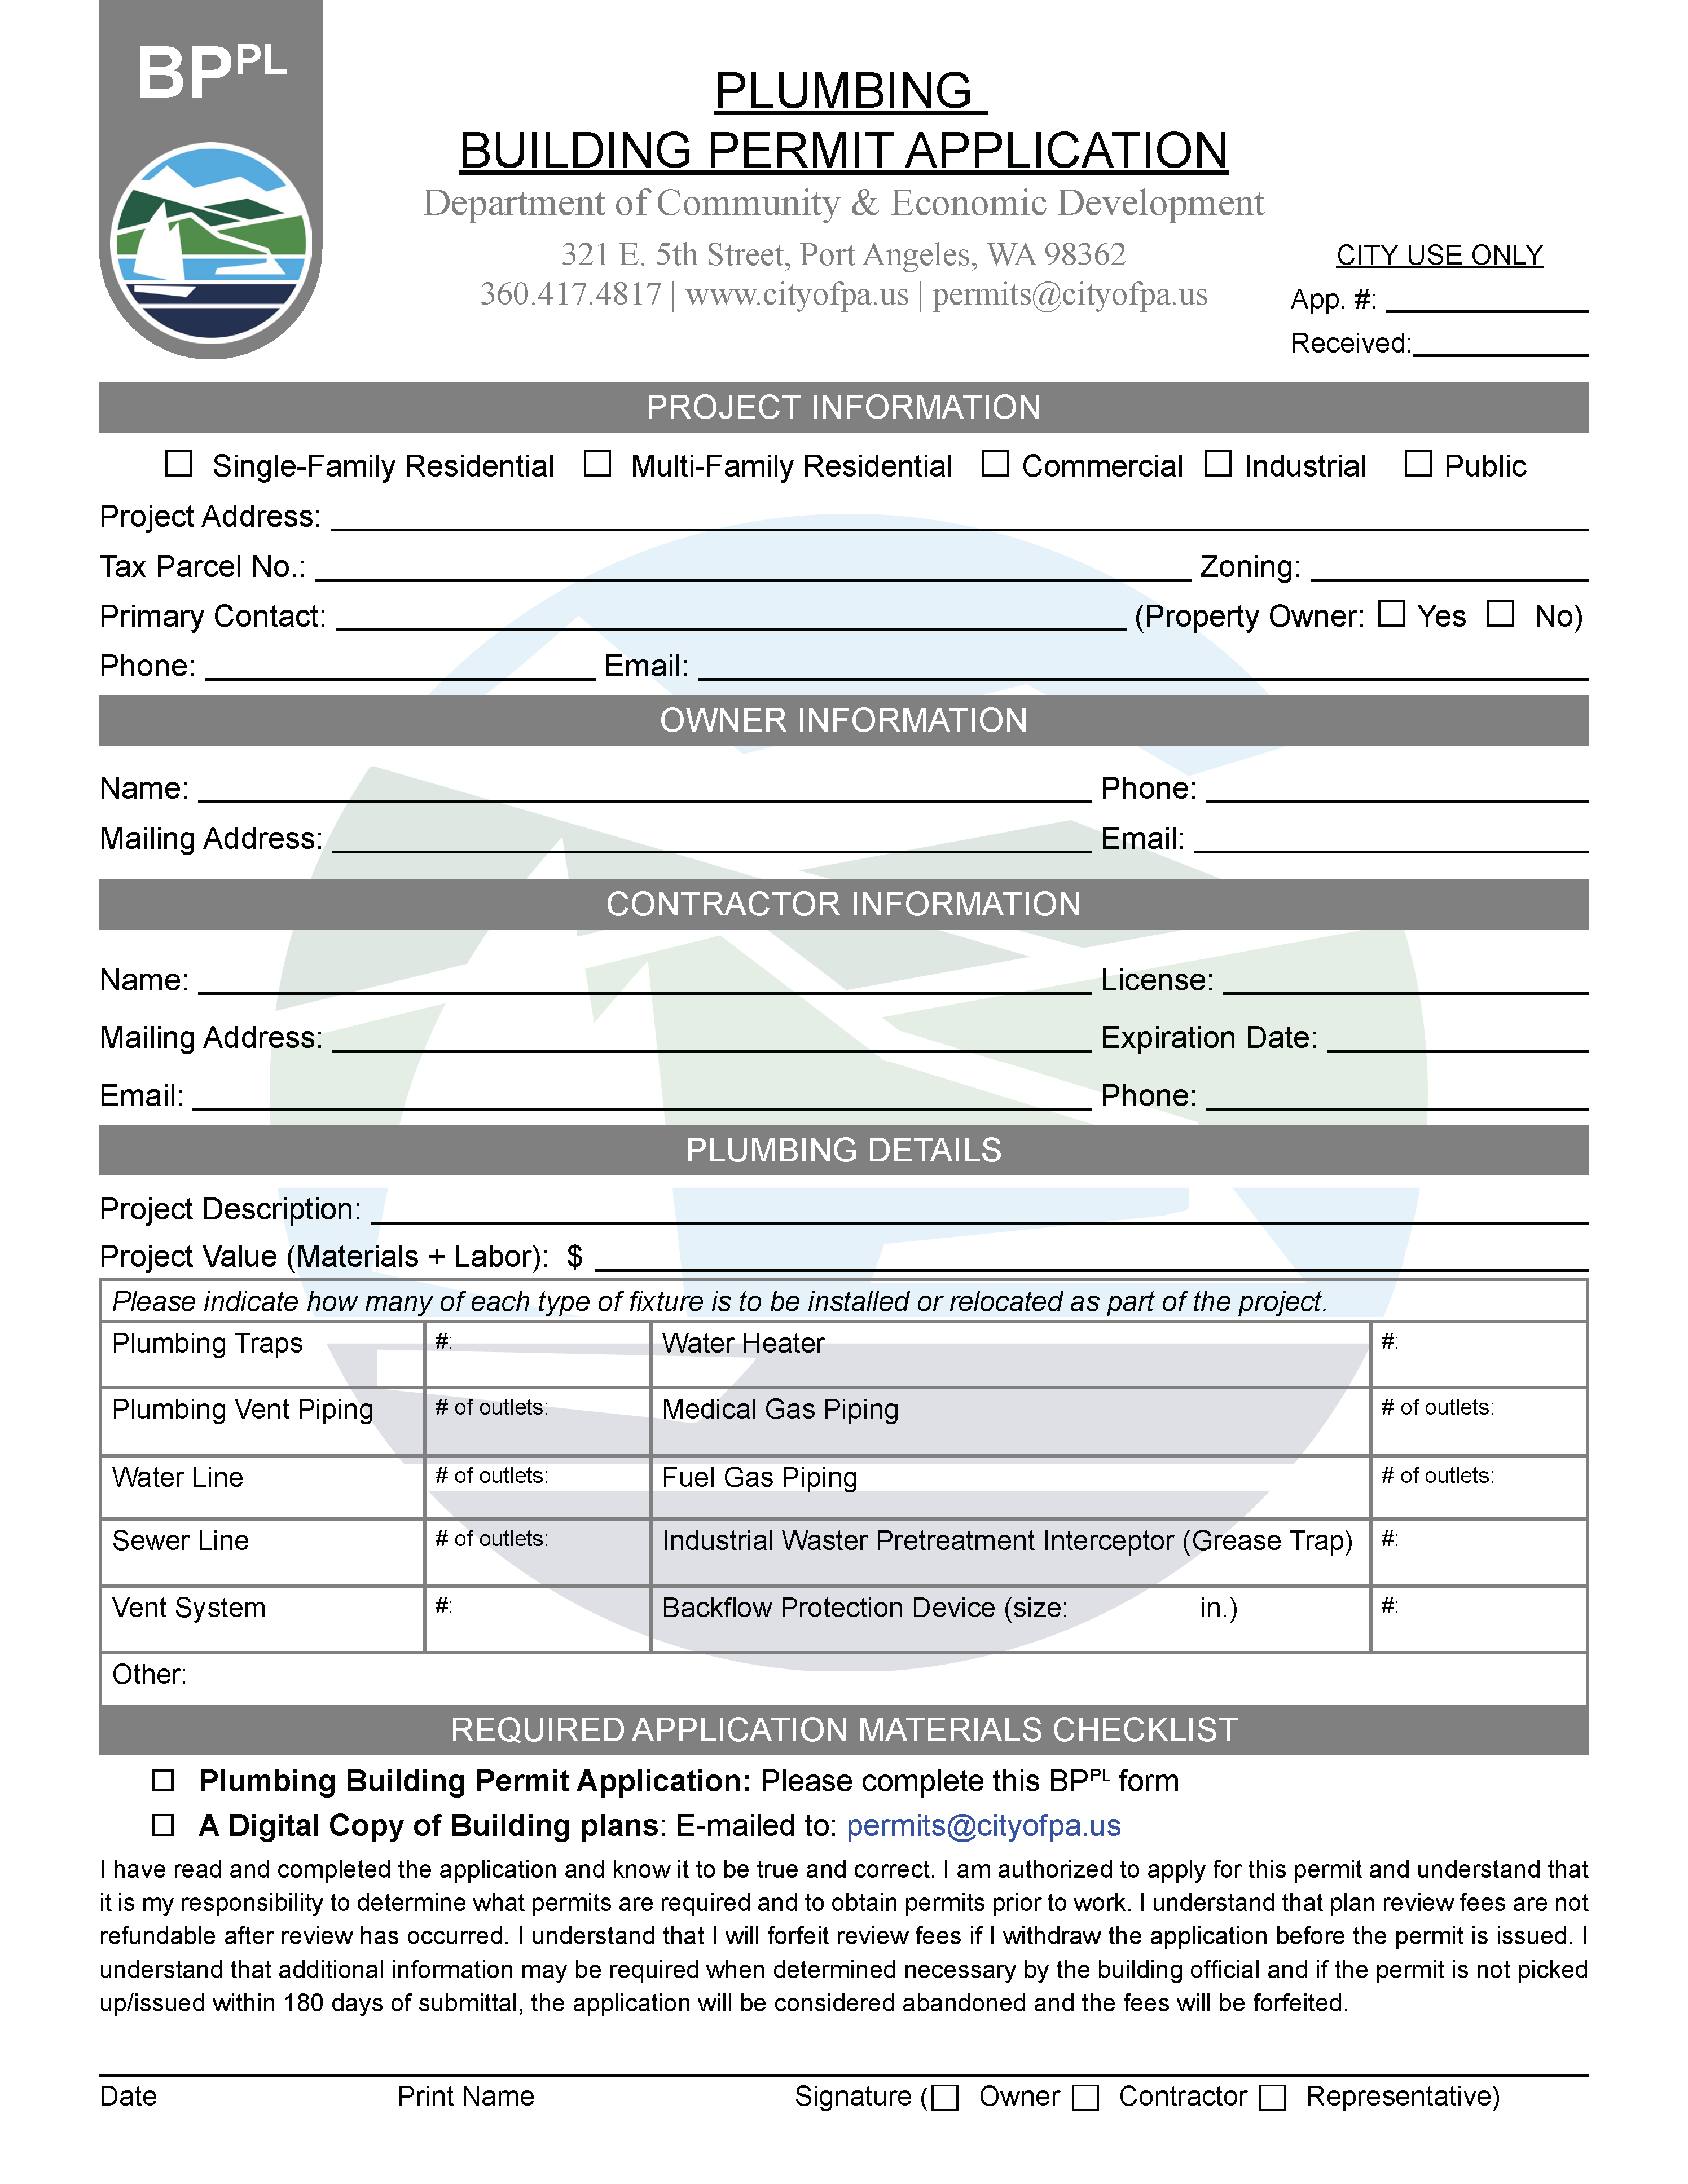 Plumbing Permit Application